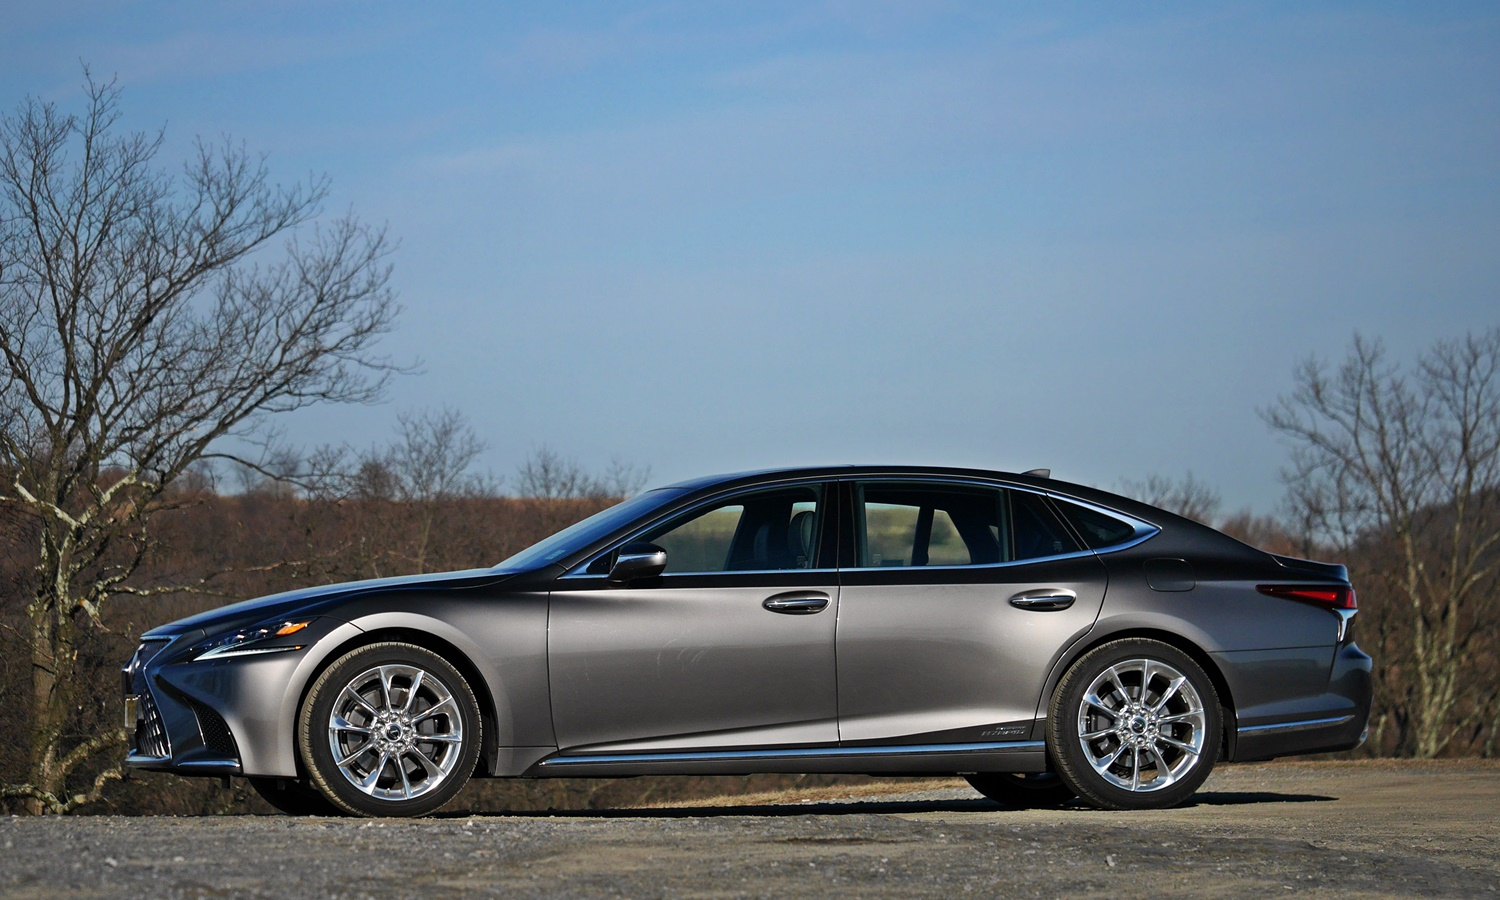 Lexus LS Photos: Lexus LS 500h side view